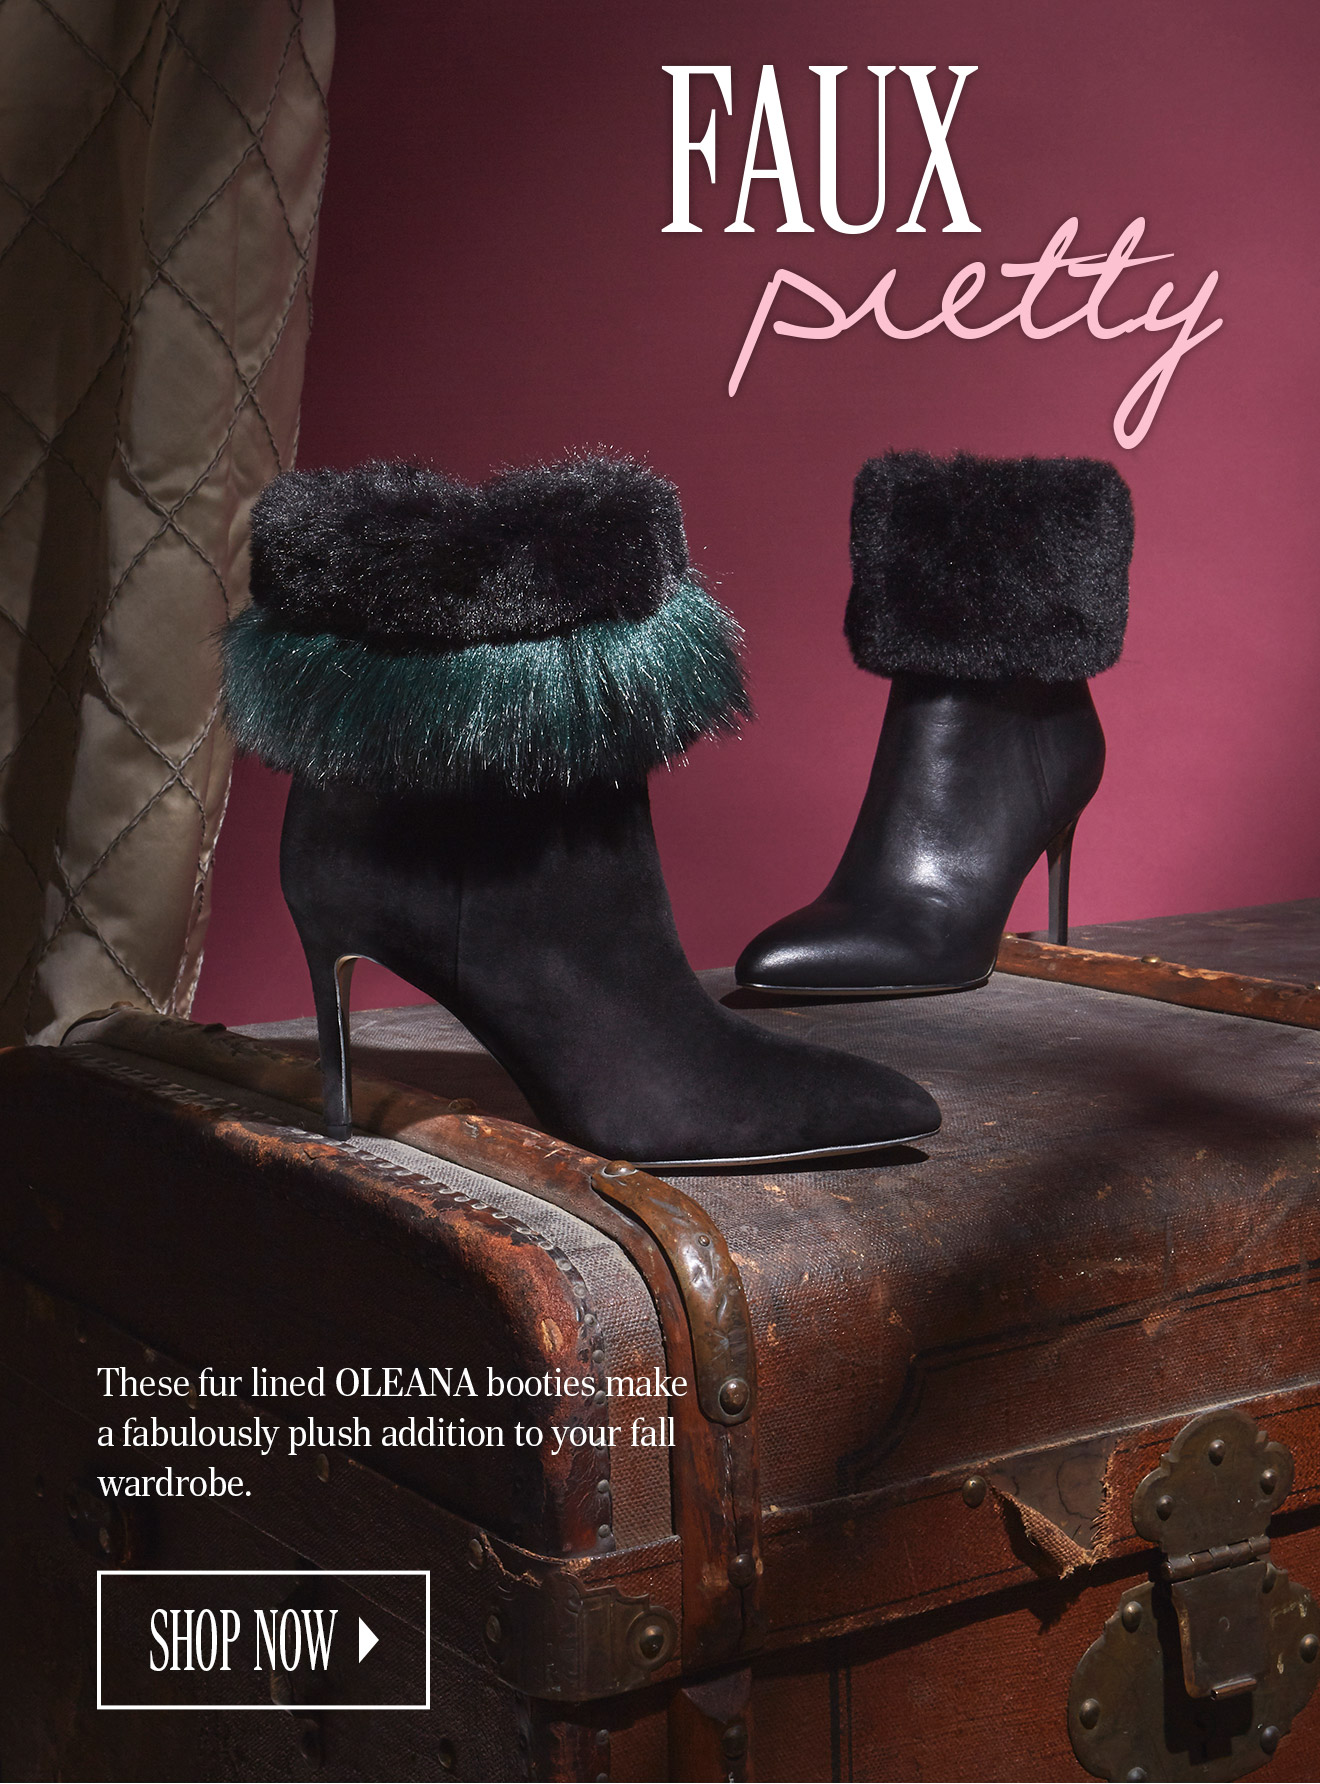 fbcaf3c7513d0 These fur line OLEANA booties make a fabulously plush addition to you fall